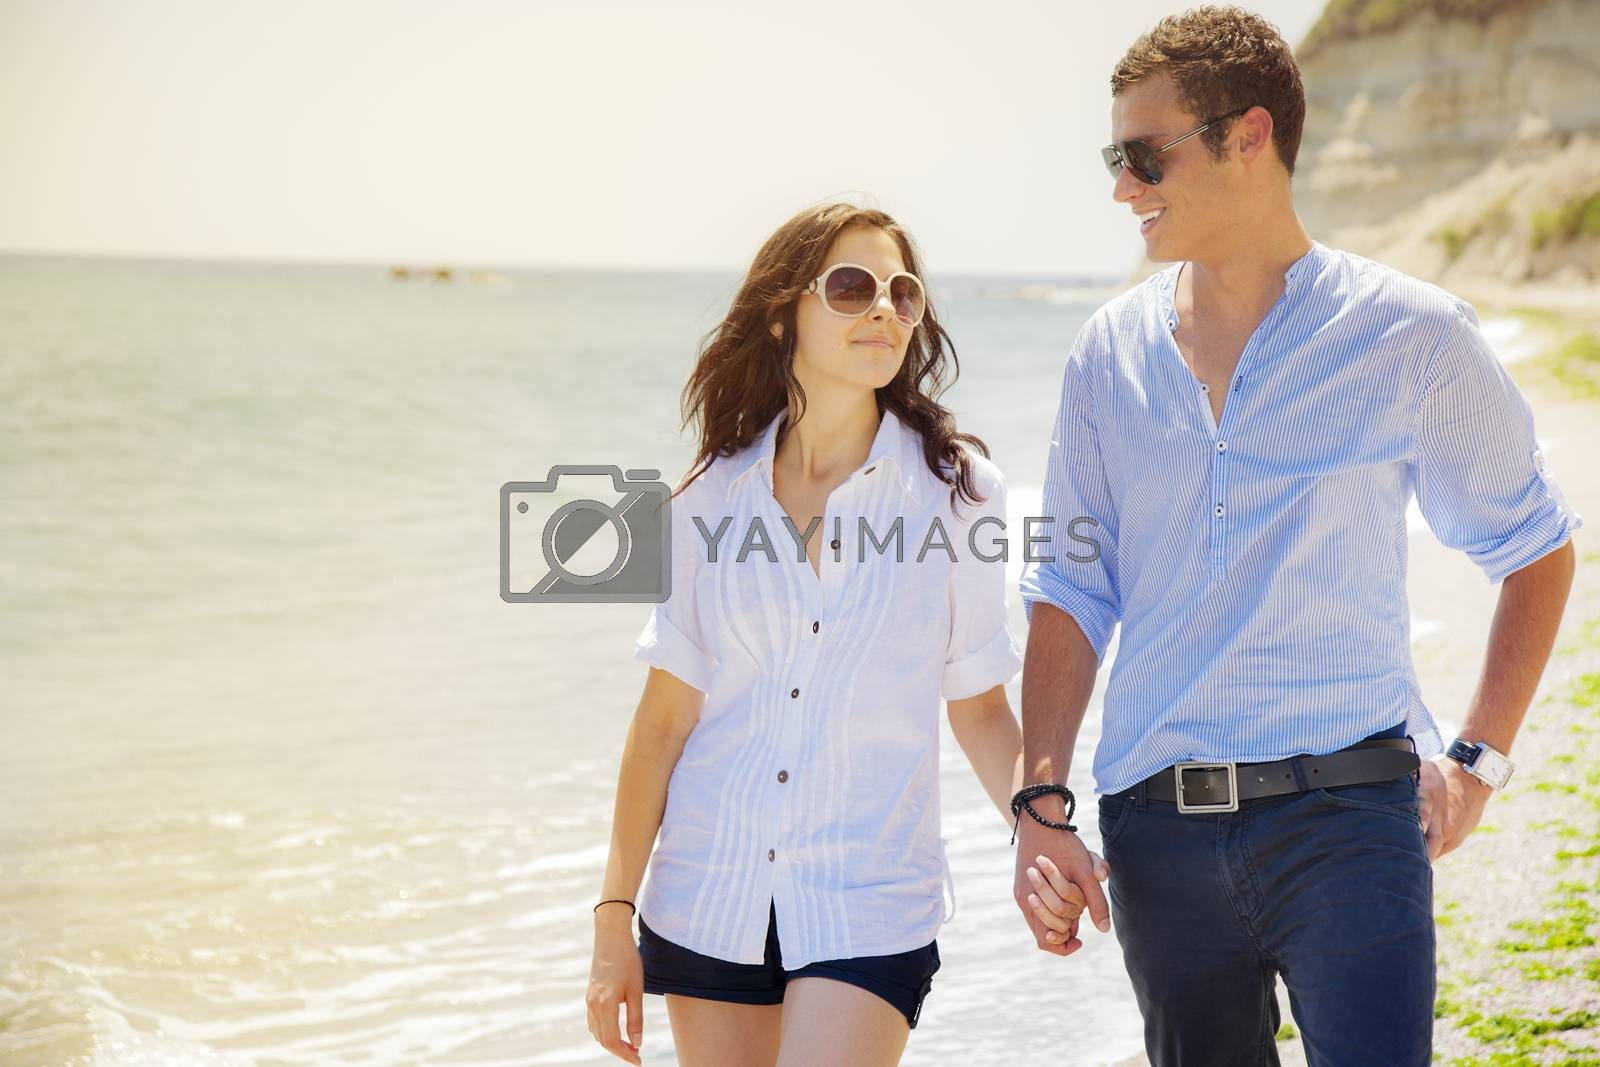 Couple in love walking by the sea hand in hand looking at each other.